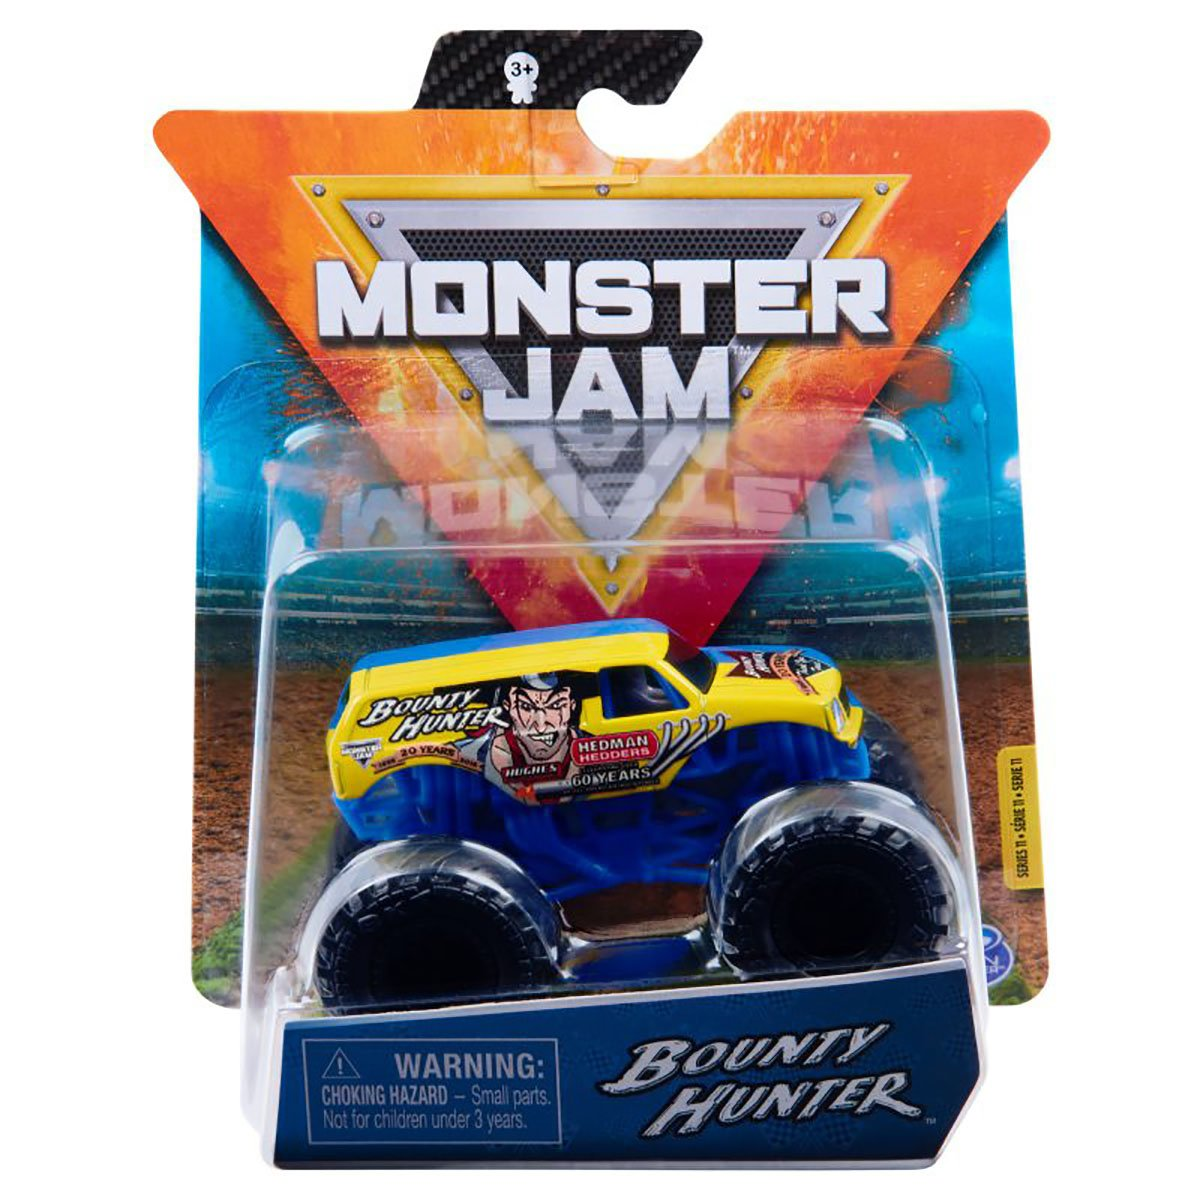 Masinuta Monster Jam, Scara 1:64, Bounty Hunter, Albastru